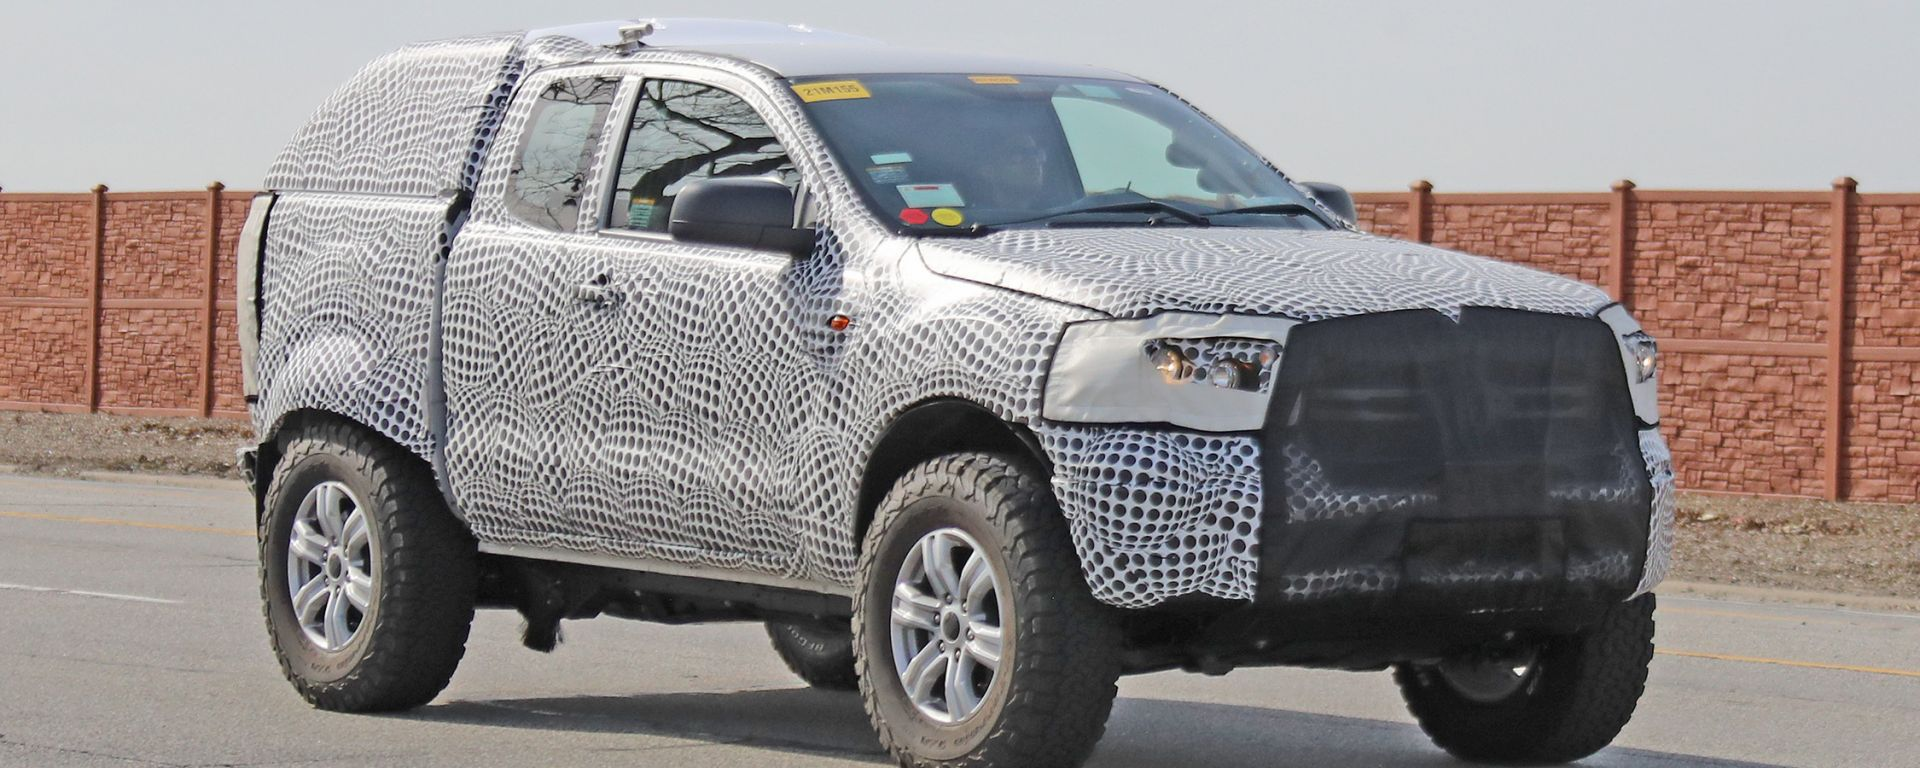 Ford Baby Bronco, rivale della Jeep Renegade: spy foto e video